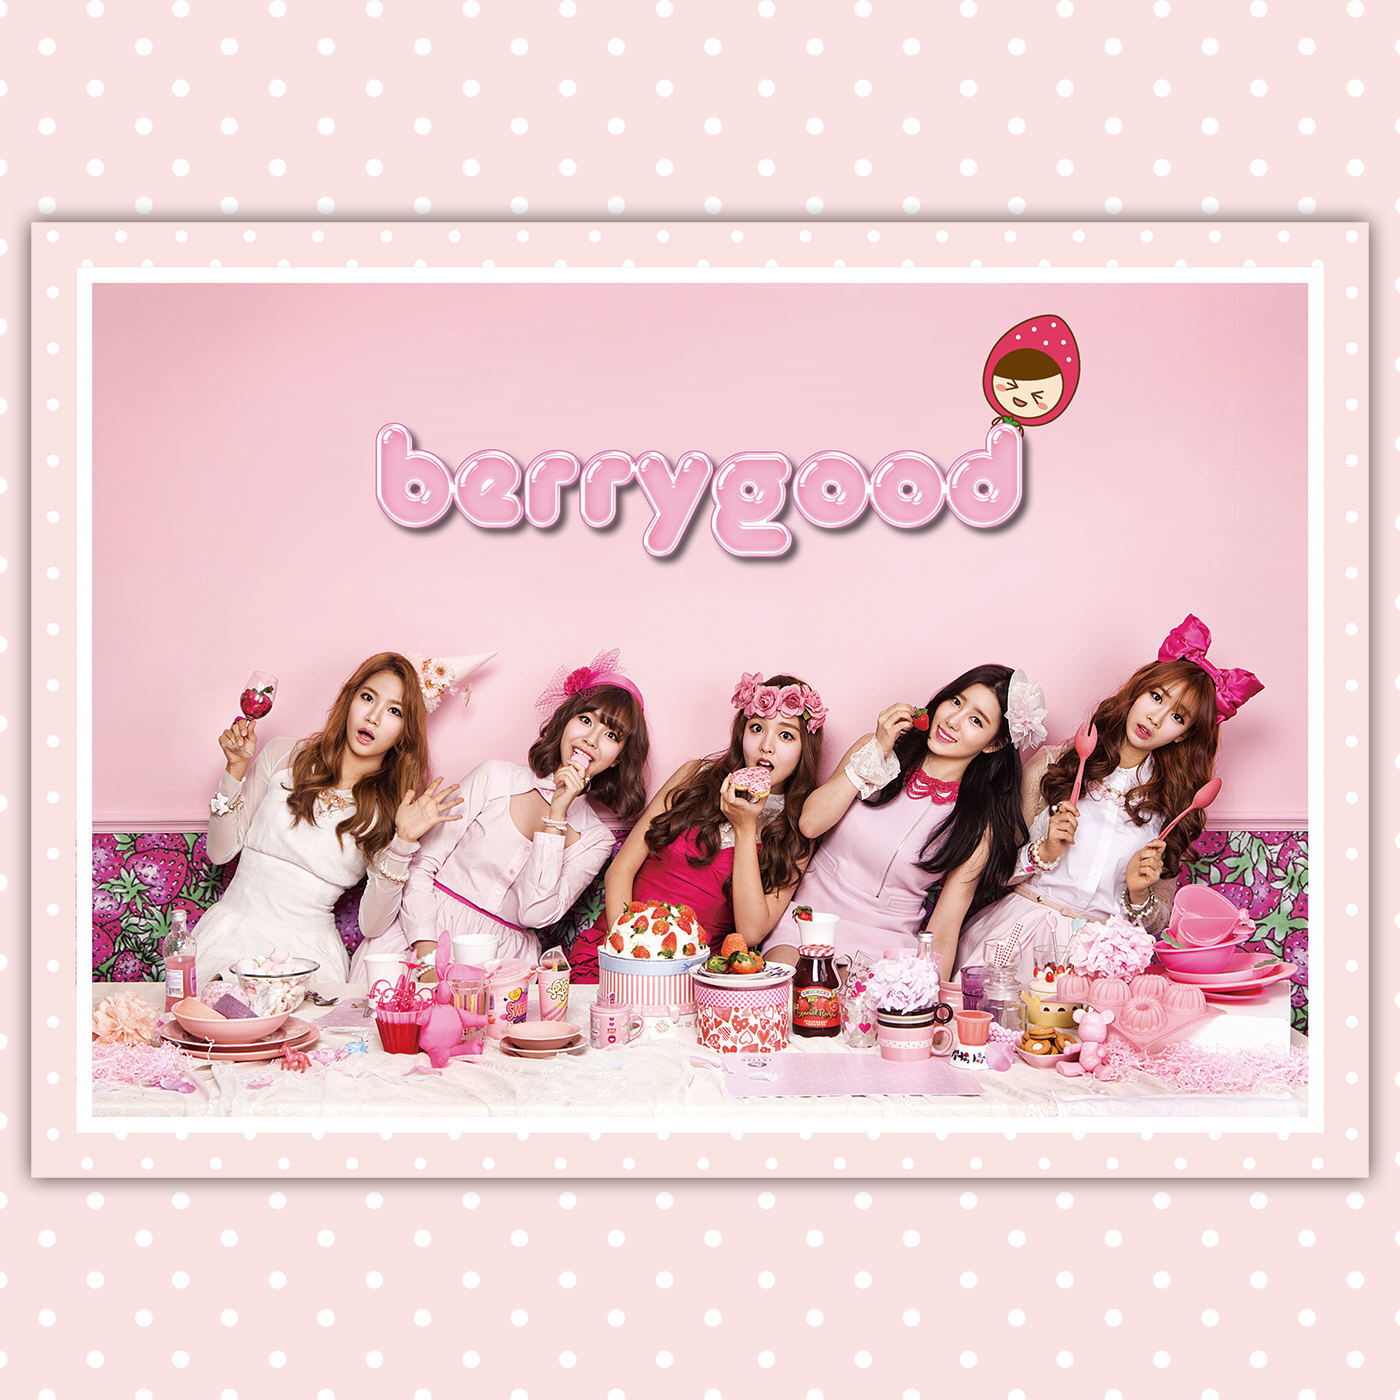 Because of You (Berry Good)